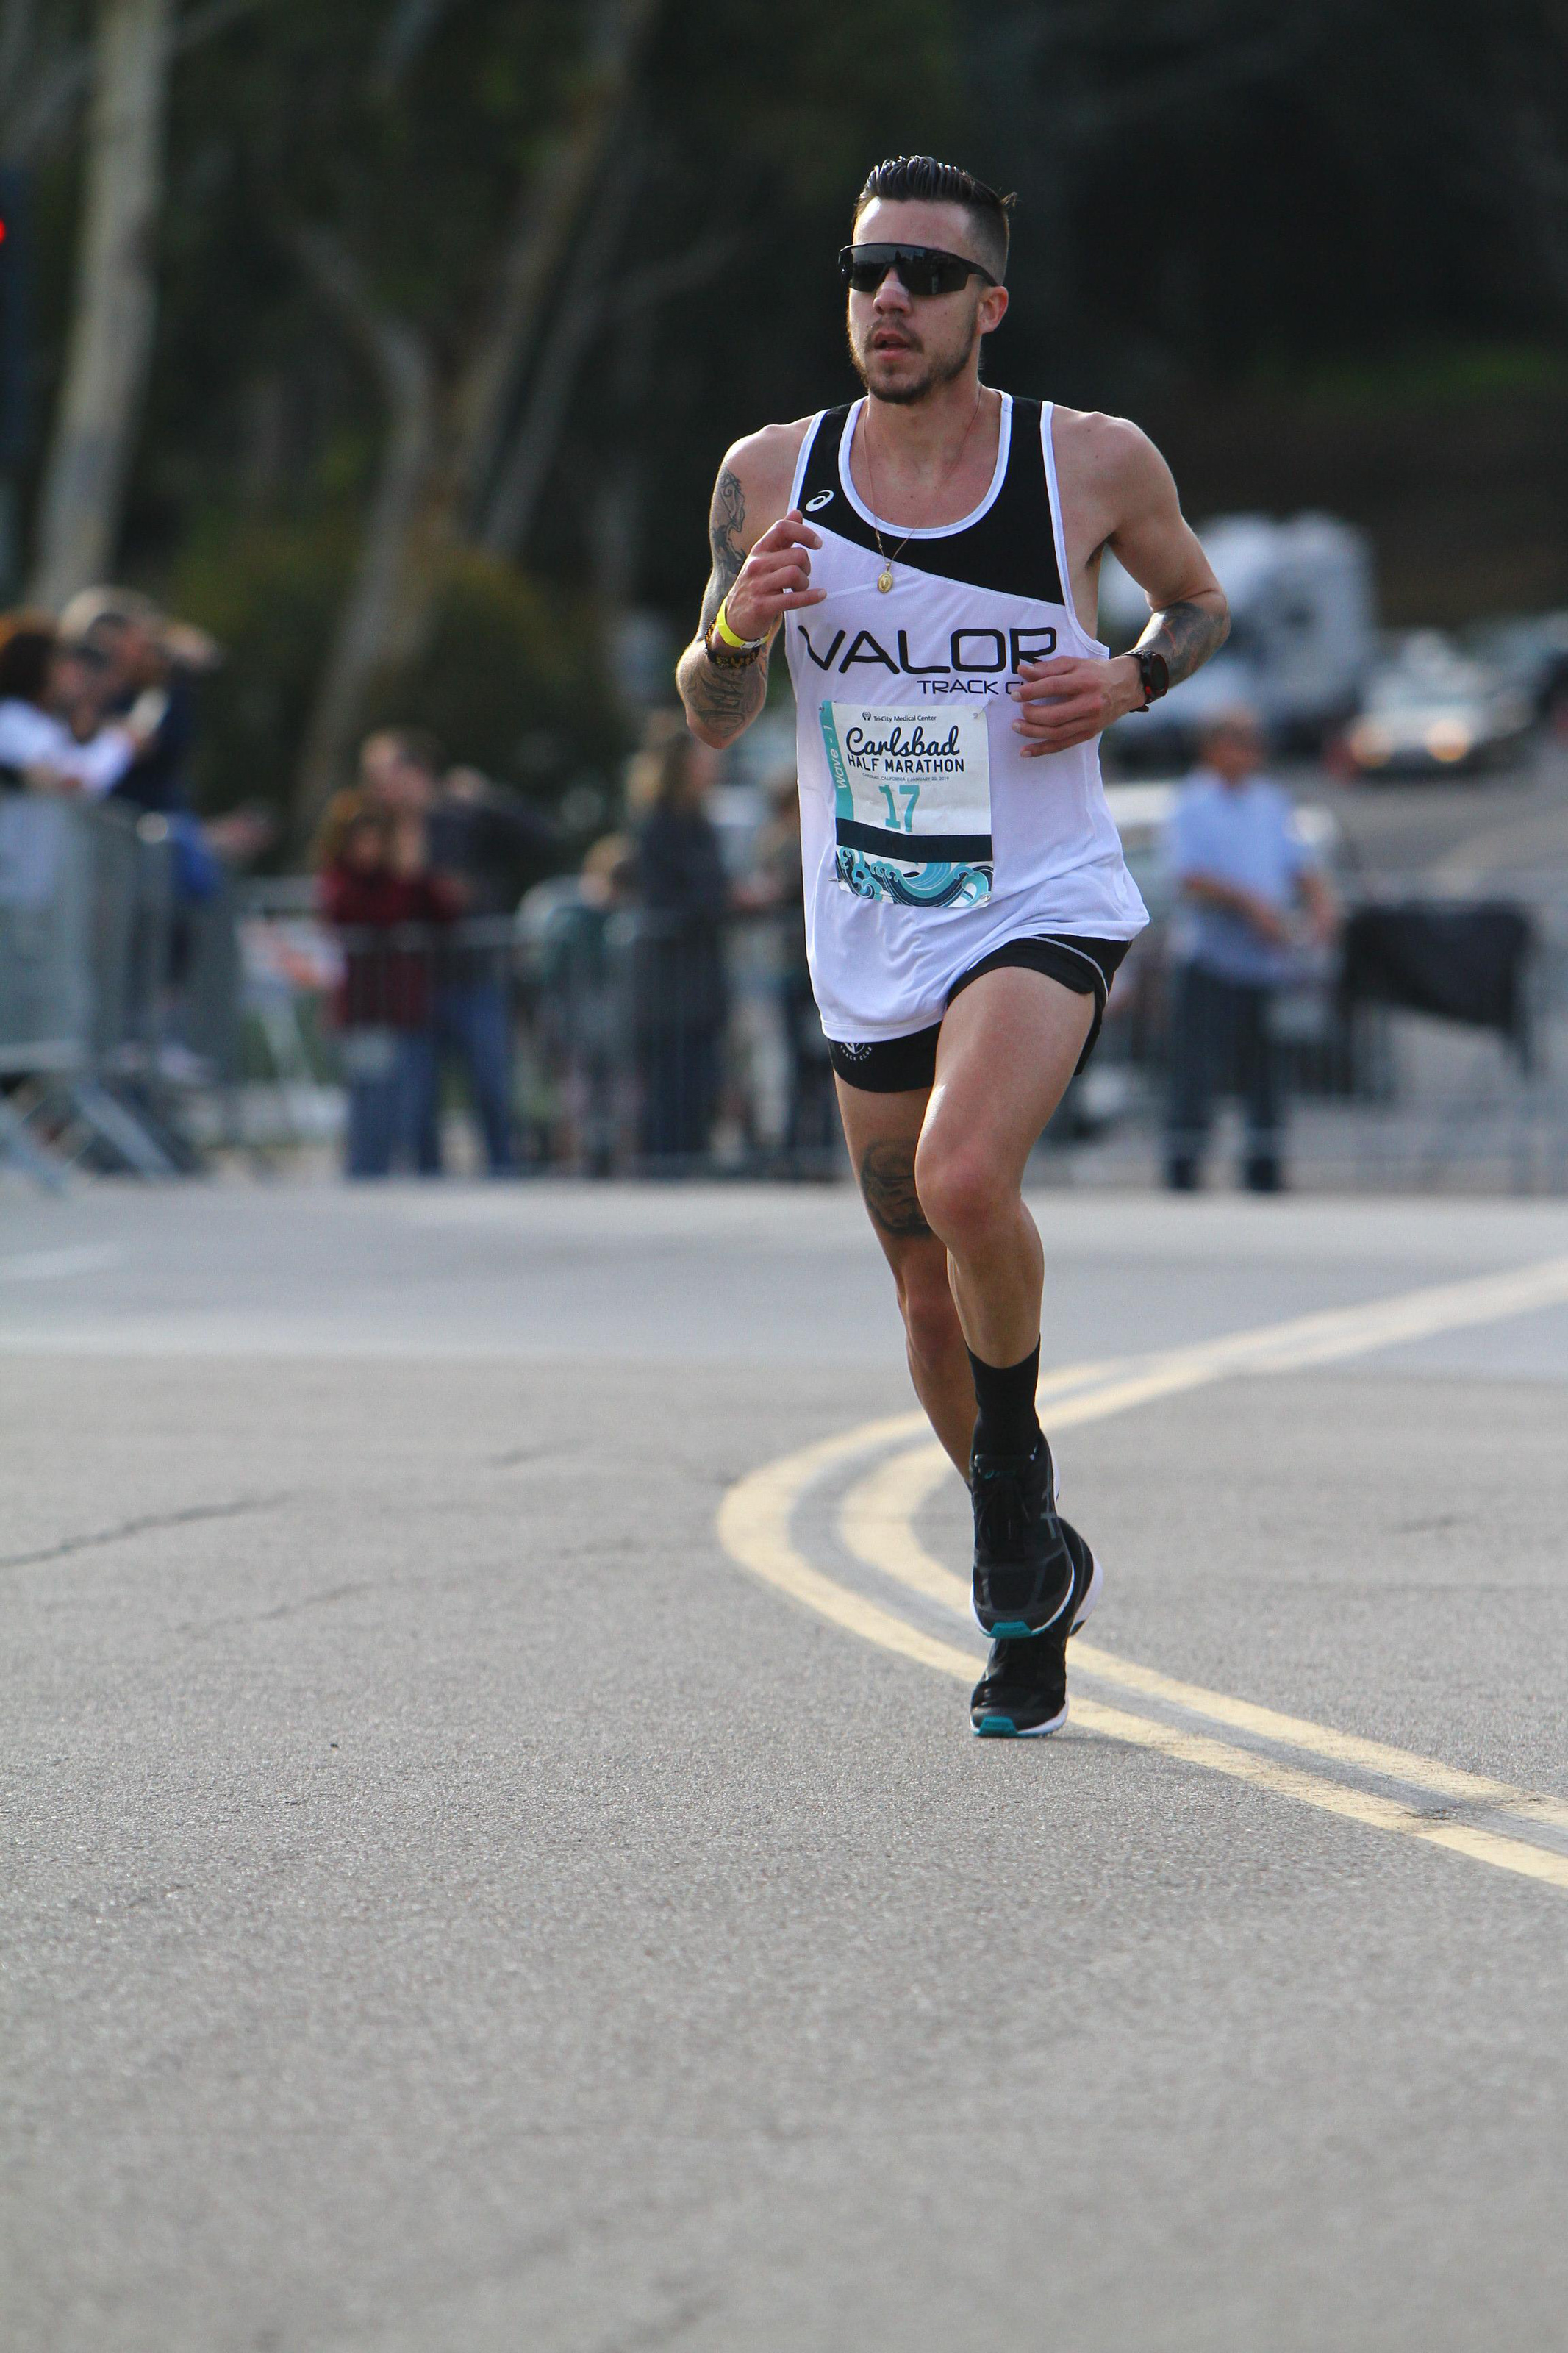 Anthony Solis - 2016 Olympic Marathon Trials Qualifier2014 US Half-Marathon Championships 64:352009 Pan American Games 10,000m 5th placePersonal best in the mile of 4:04Personal best in the 5000 meters of 14:08Personal best in the 10000 meters of 29:31Personal best in the half marathon of 1:04:35